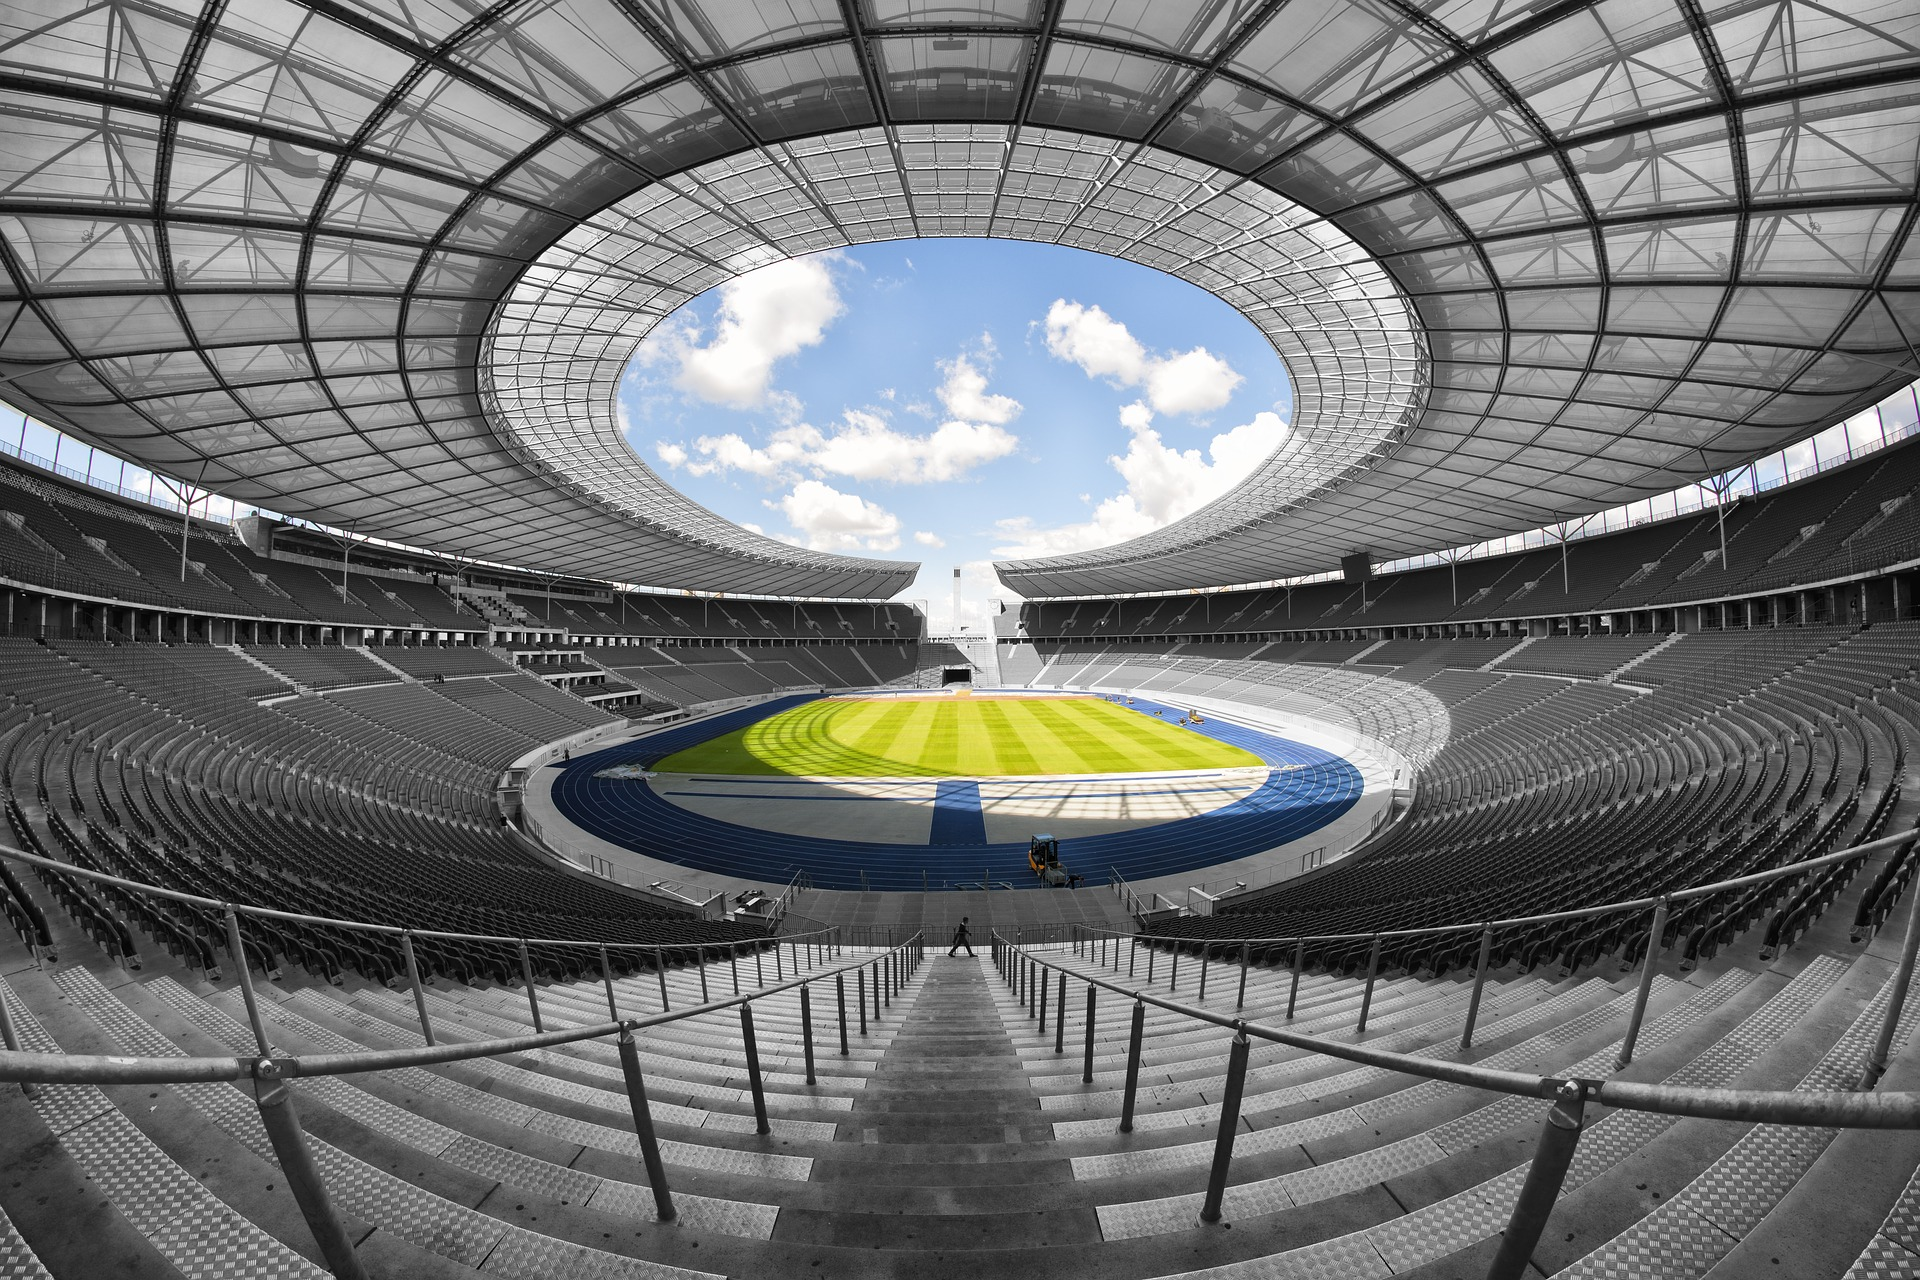 Olympic stadium photo